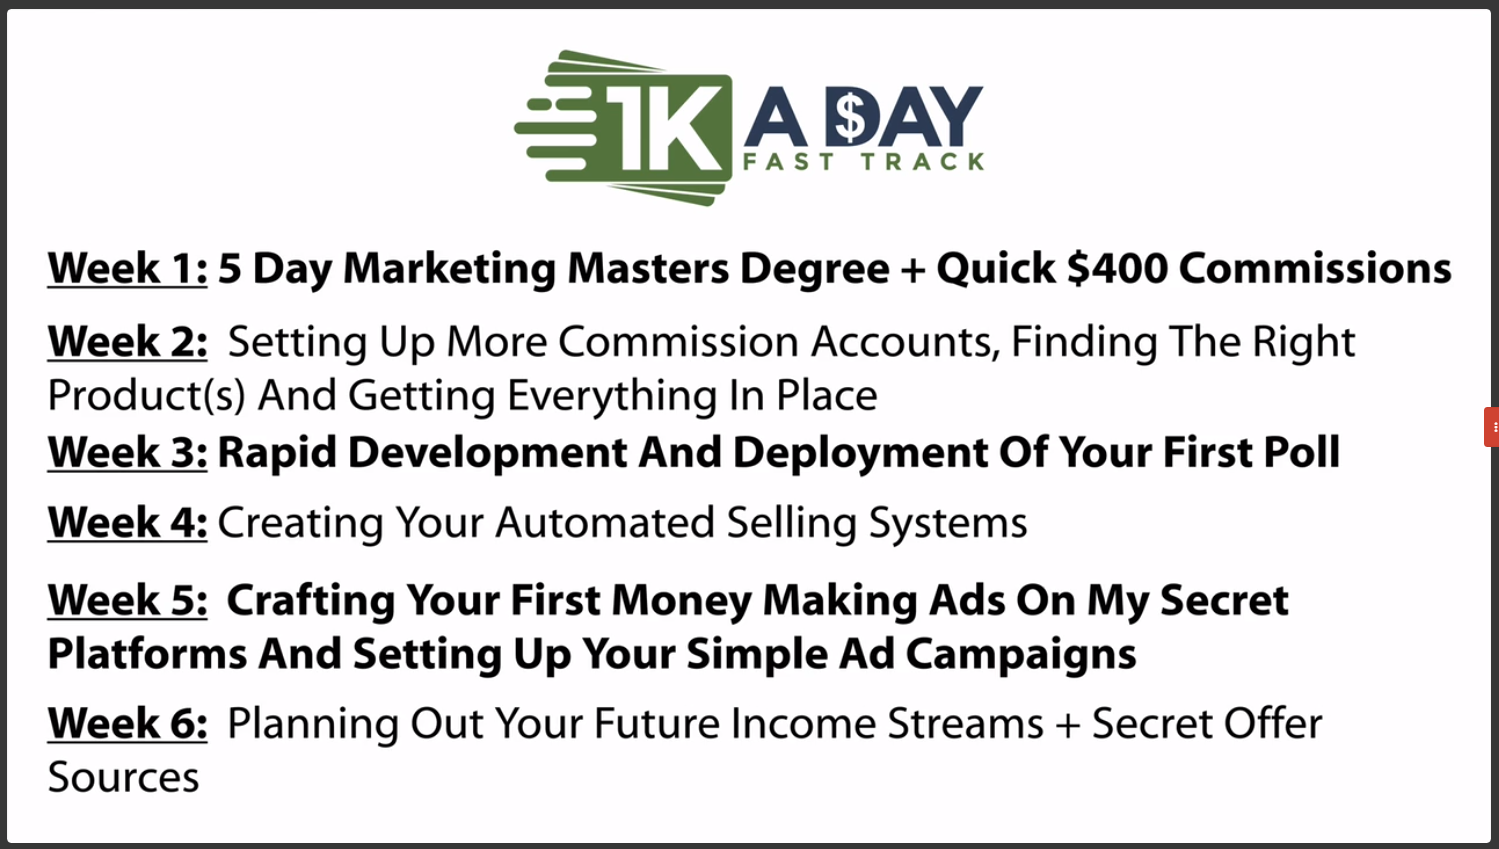 1k A Day Fast Track Deals Now